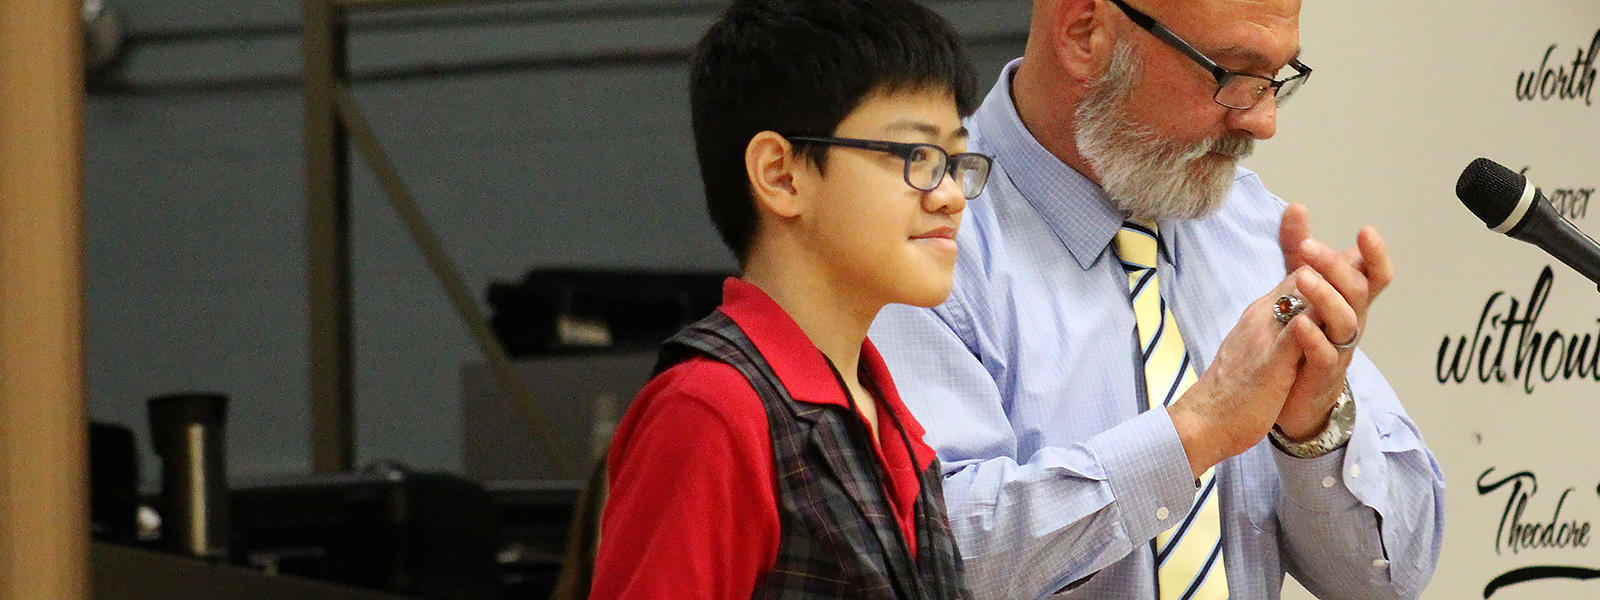 Andrew Ticao wins the District Spelling Bee for the third year in a row.